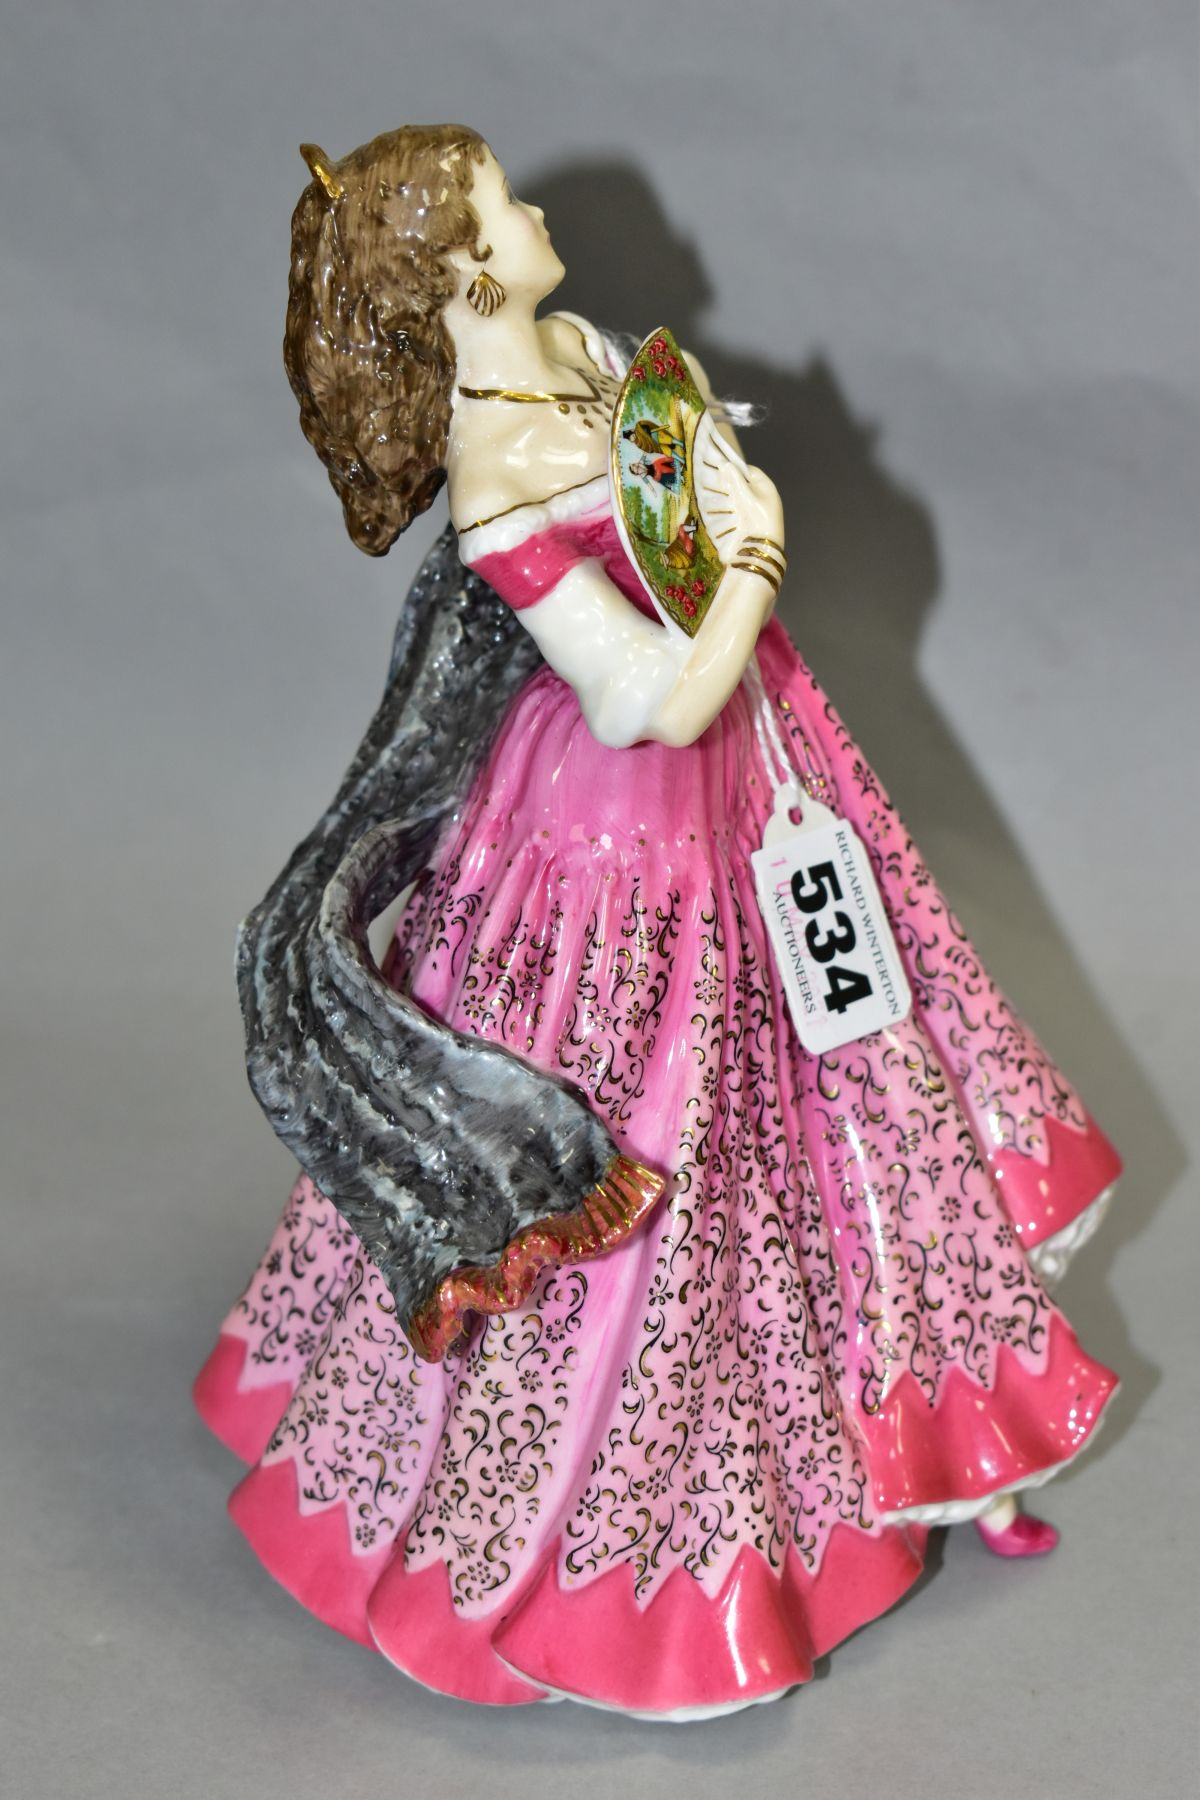 A LIMITED EDITION ROYAL DOULTON FIGURE, 'Carmen' HN3993 from Opera Heroines Collection sculptured by - Image 3 of 5